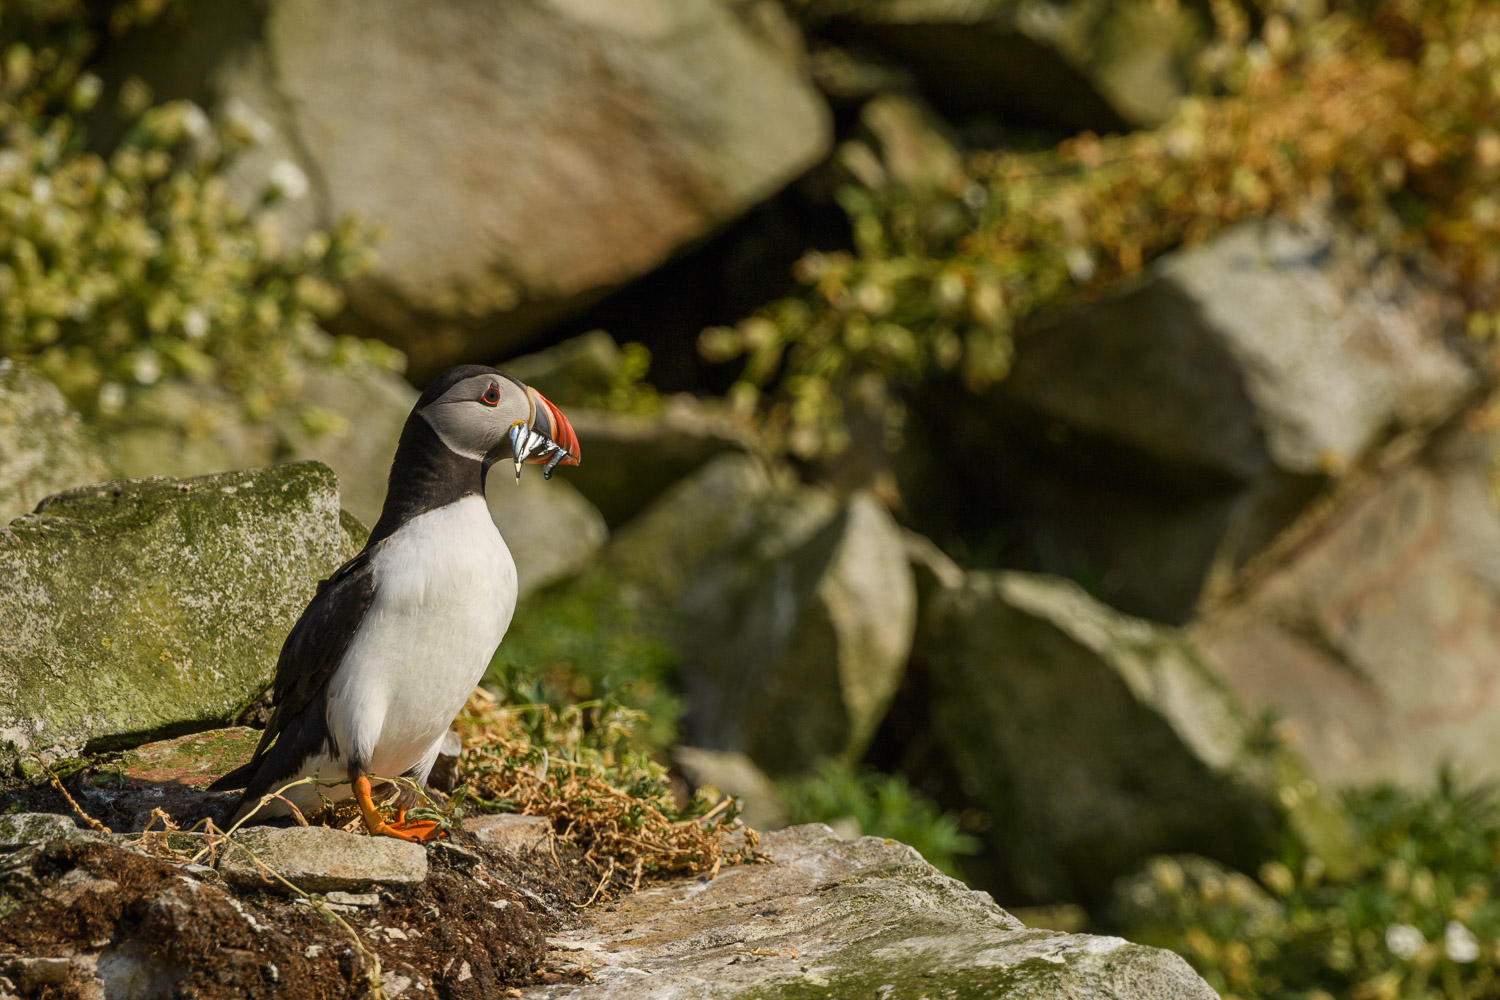 Puffin (Fratercula arctica) with Sand eels (Ammodytes americanus